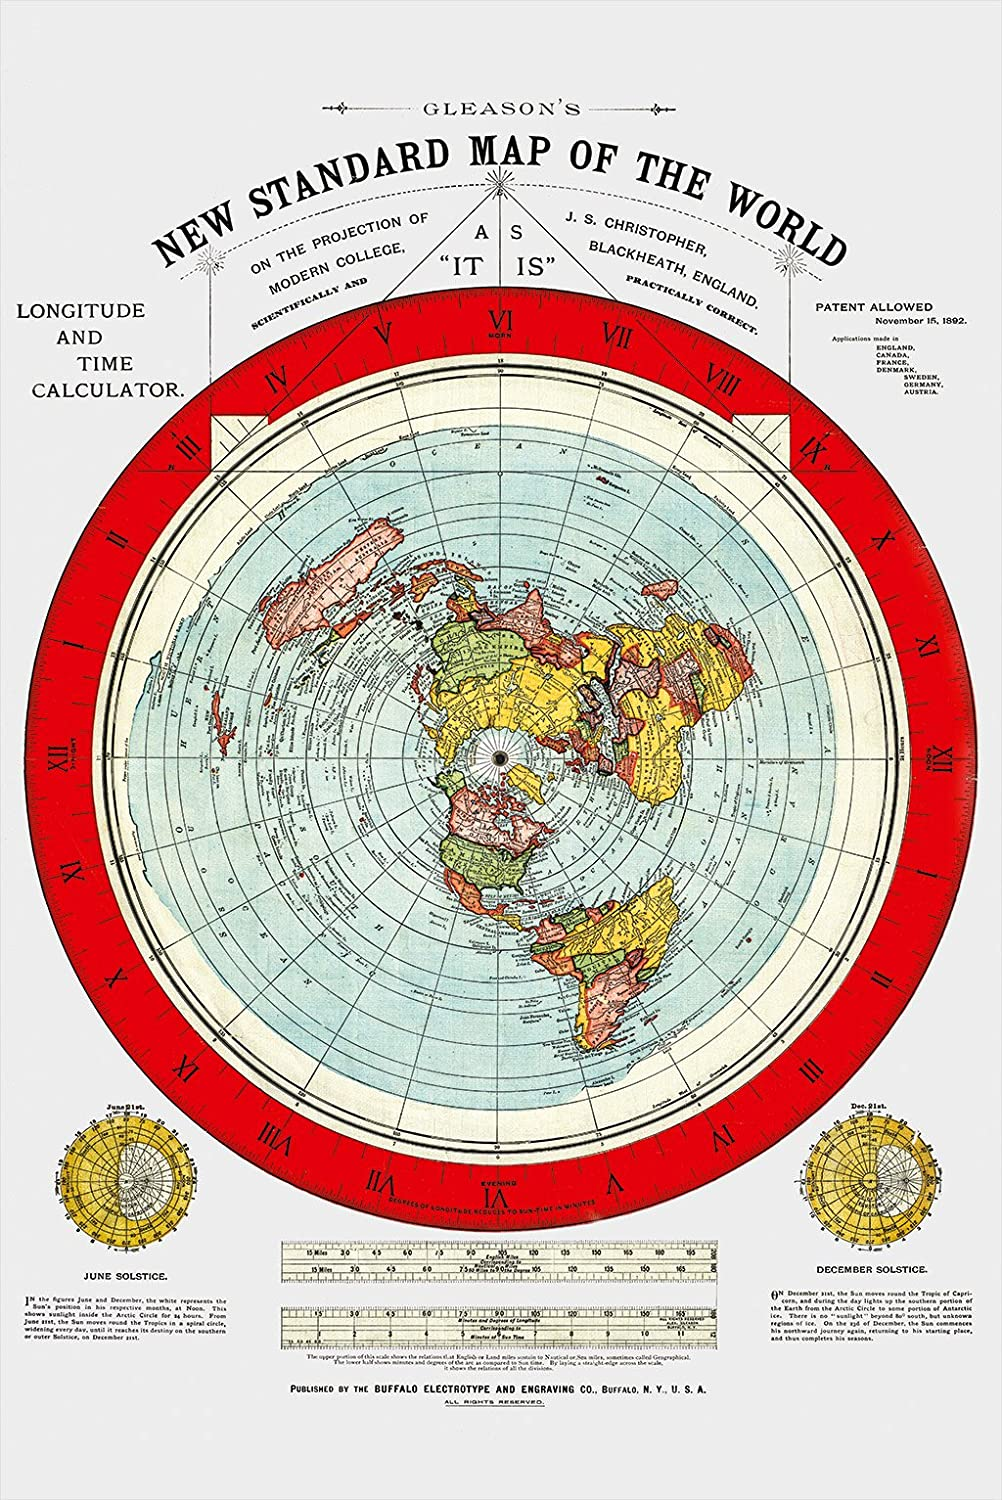 Gleason Flat Earth Map Amazon.: Flat Earth Map   Gleason's New Standard Map Of The